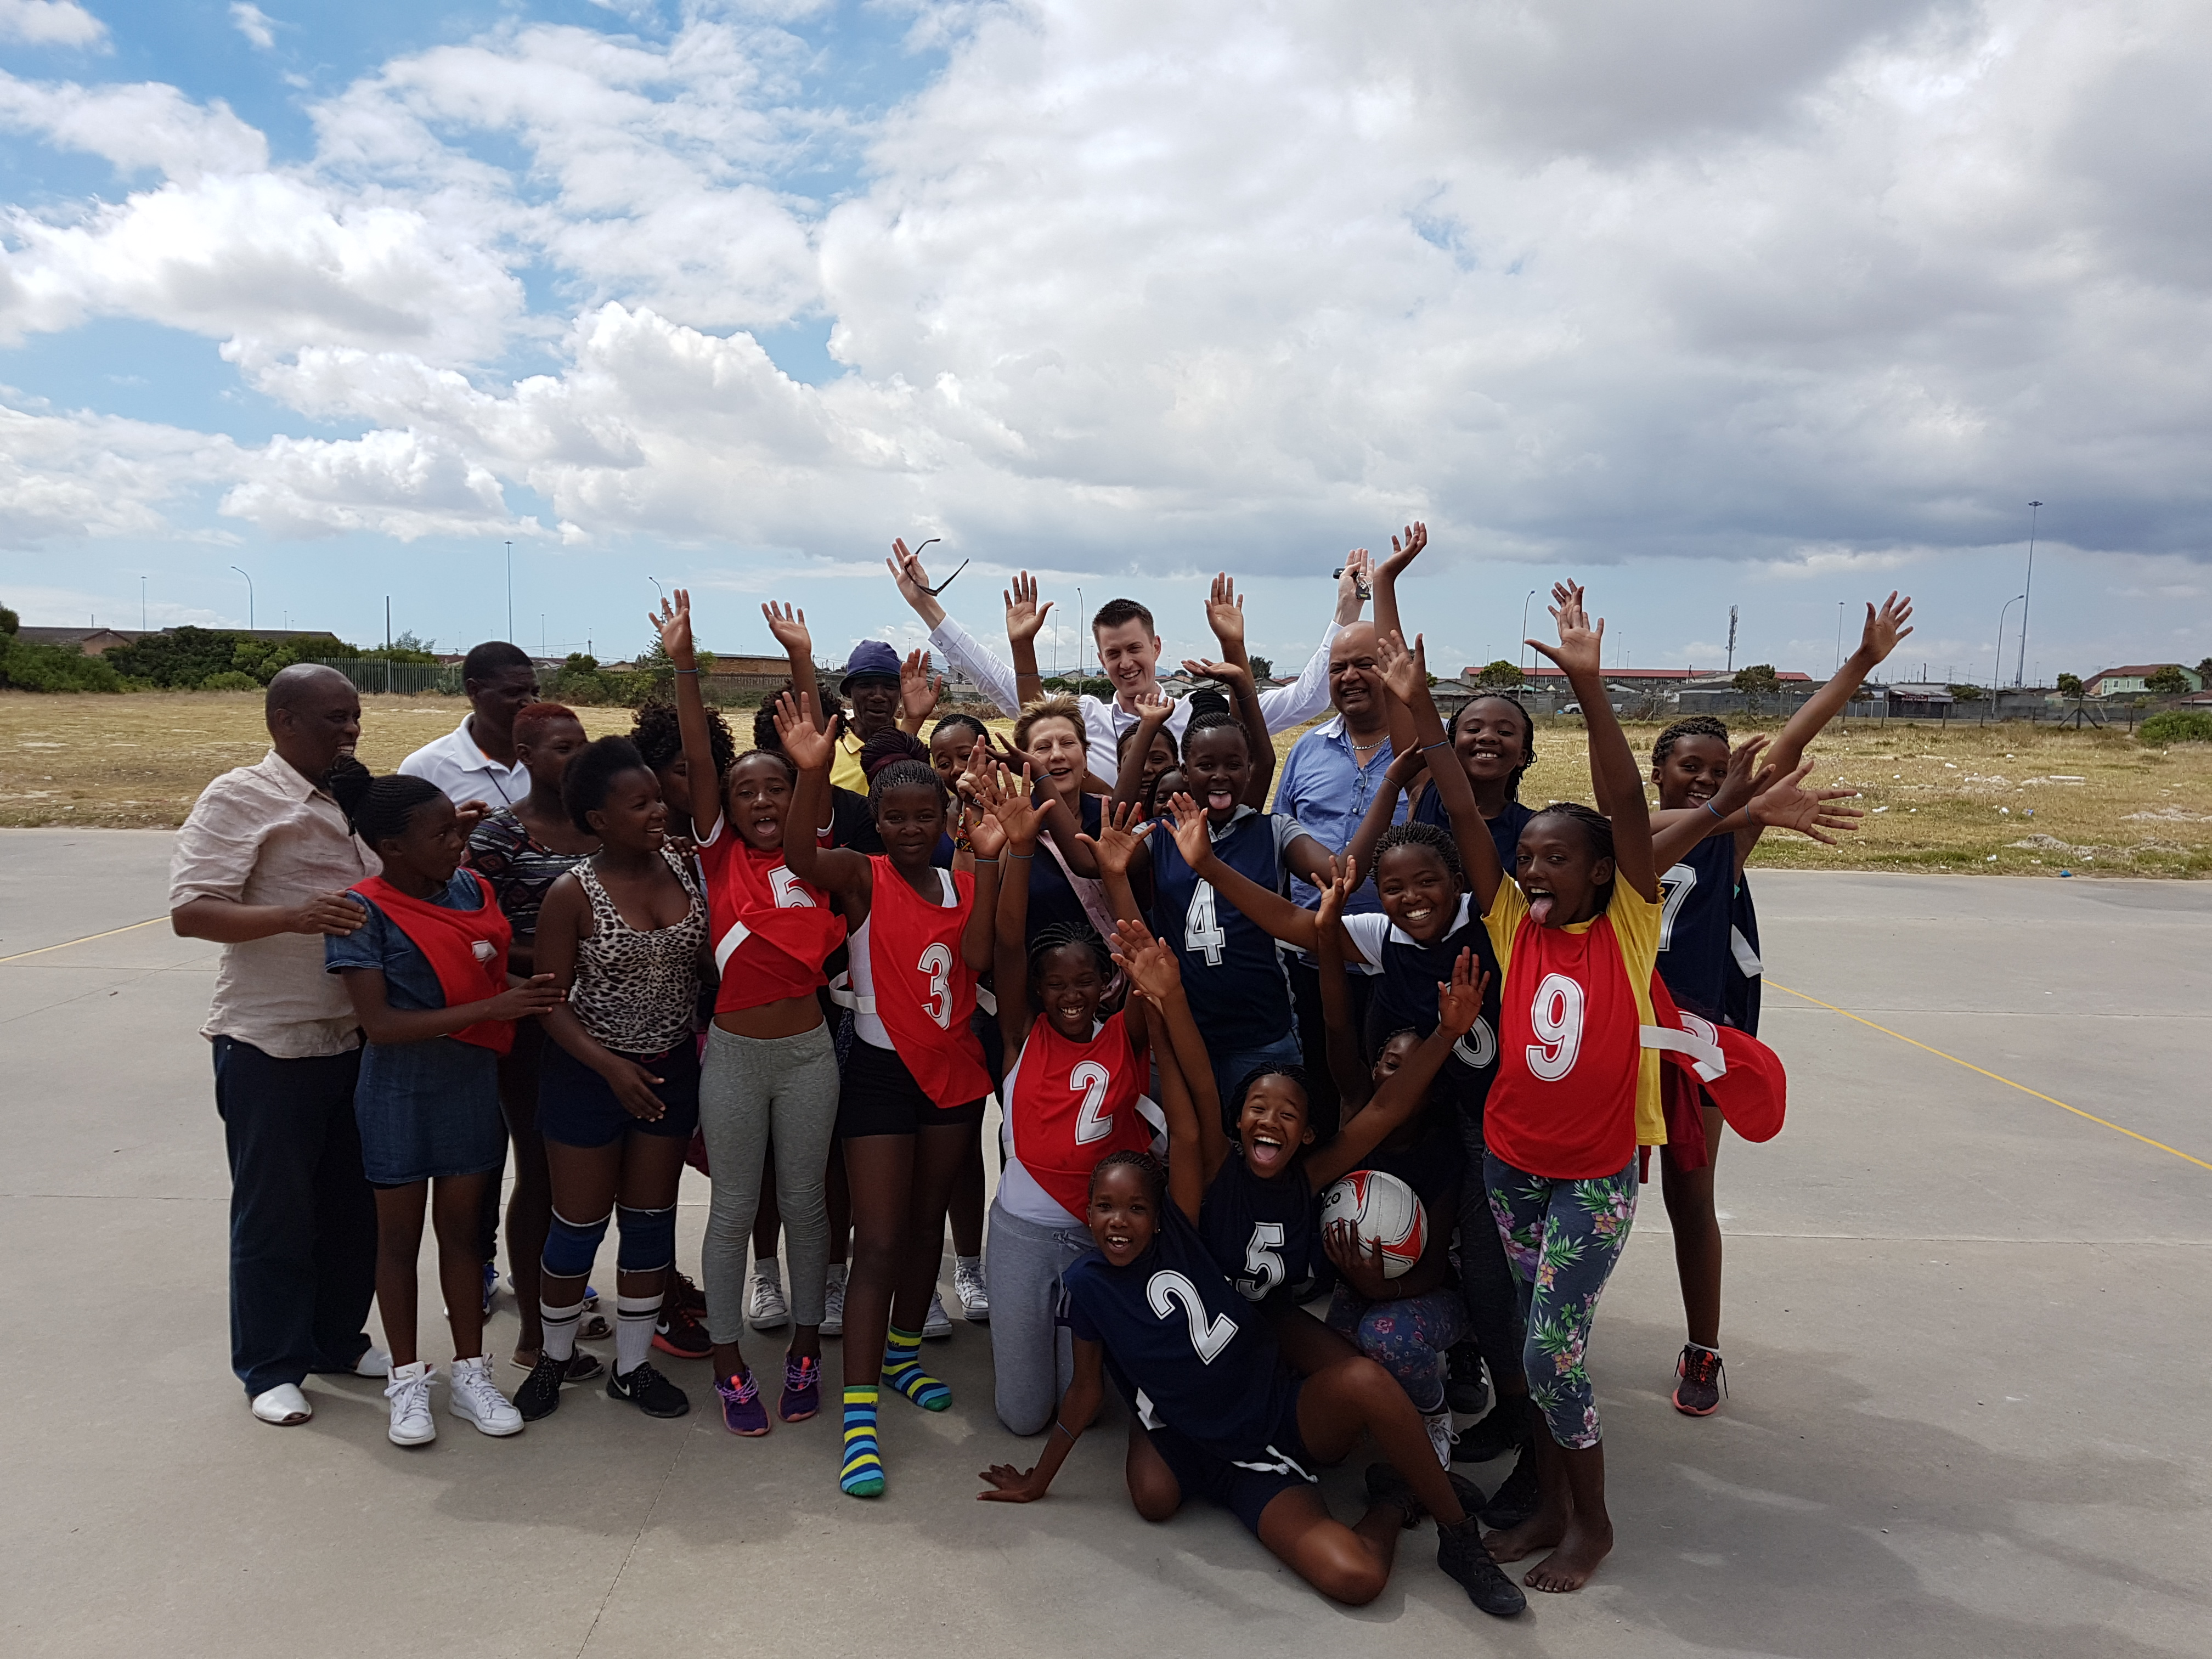 Minister Marais with some of the children who participated in the sporting activities